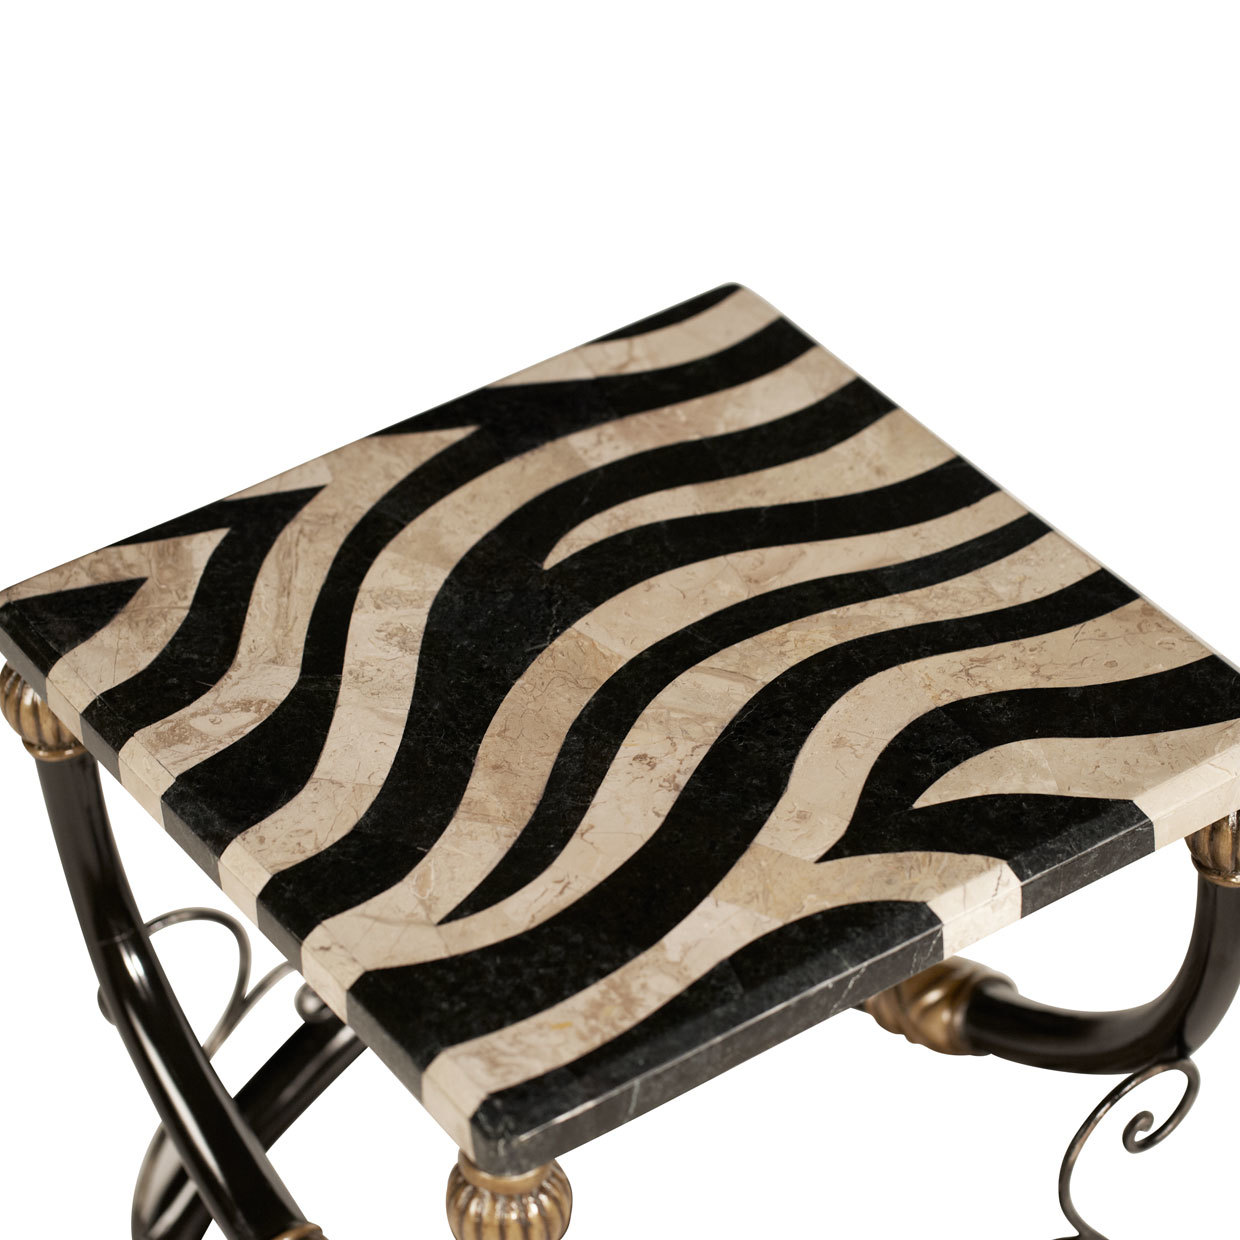 aico zebra accent table michael amini furniture designs act caro waterproof phone pouch target storage cube coffee small balcony sets white bedside lockers modern interior design